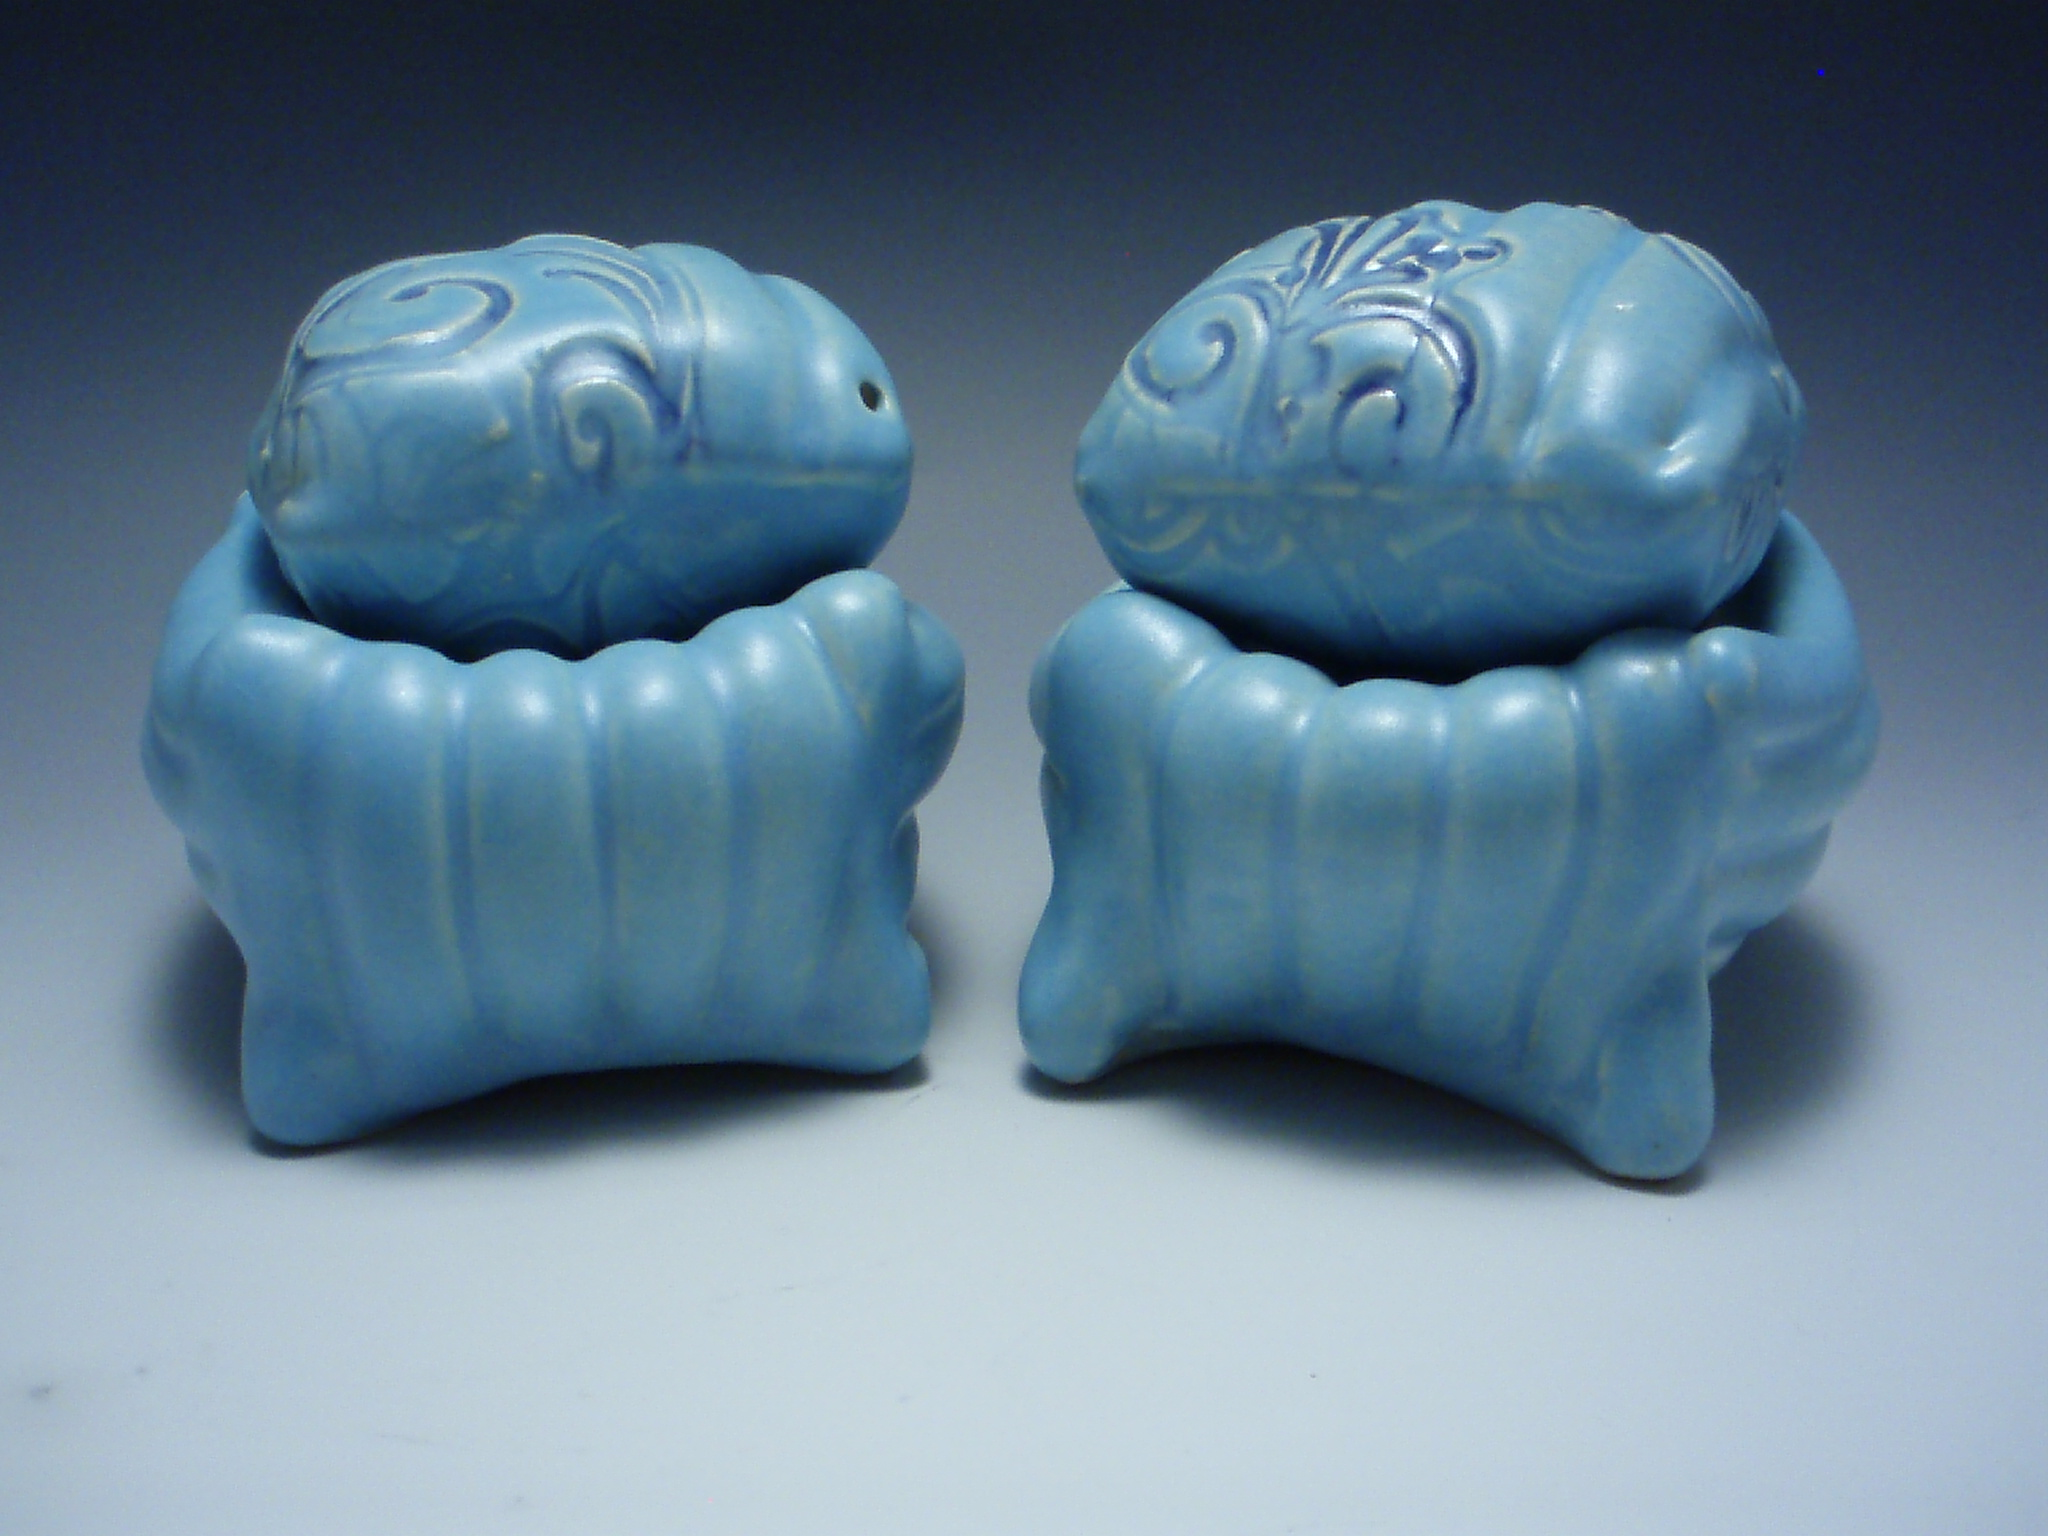 blue salt and pepper cubes on cushions, 2007